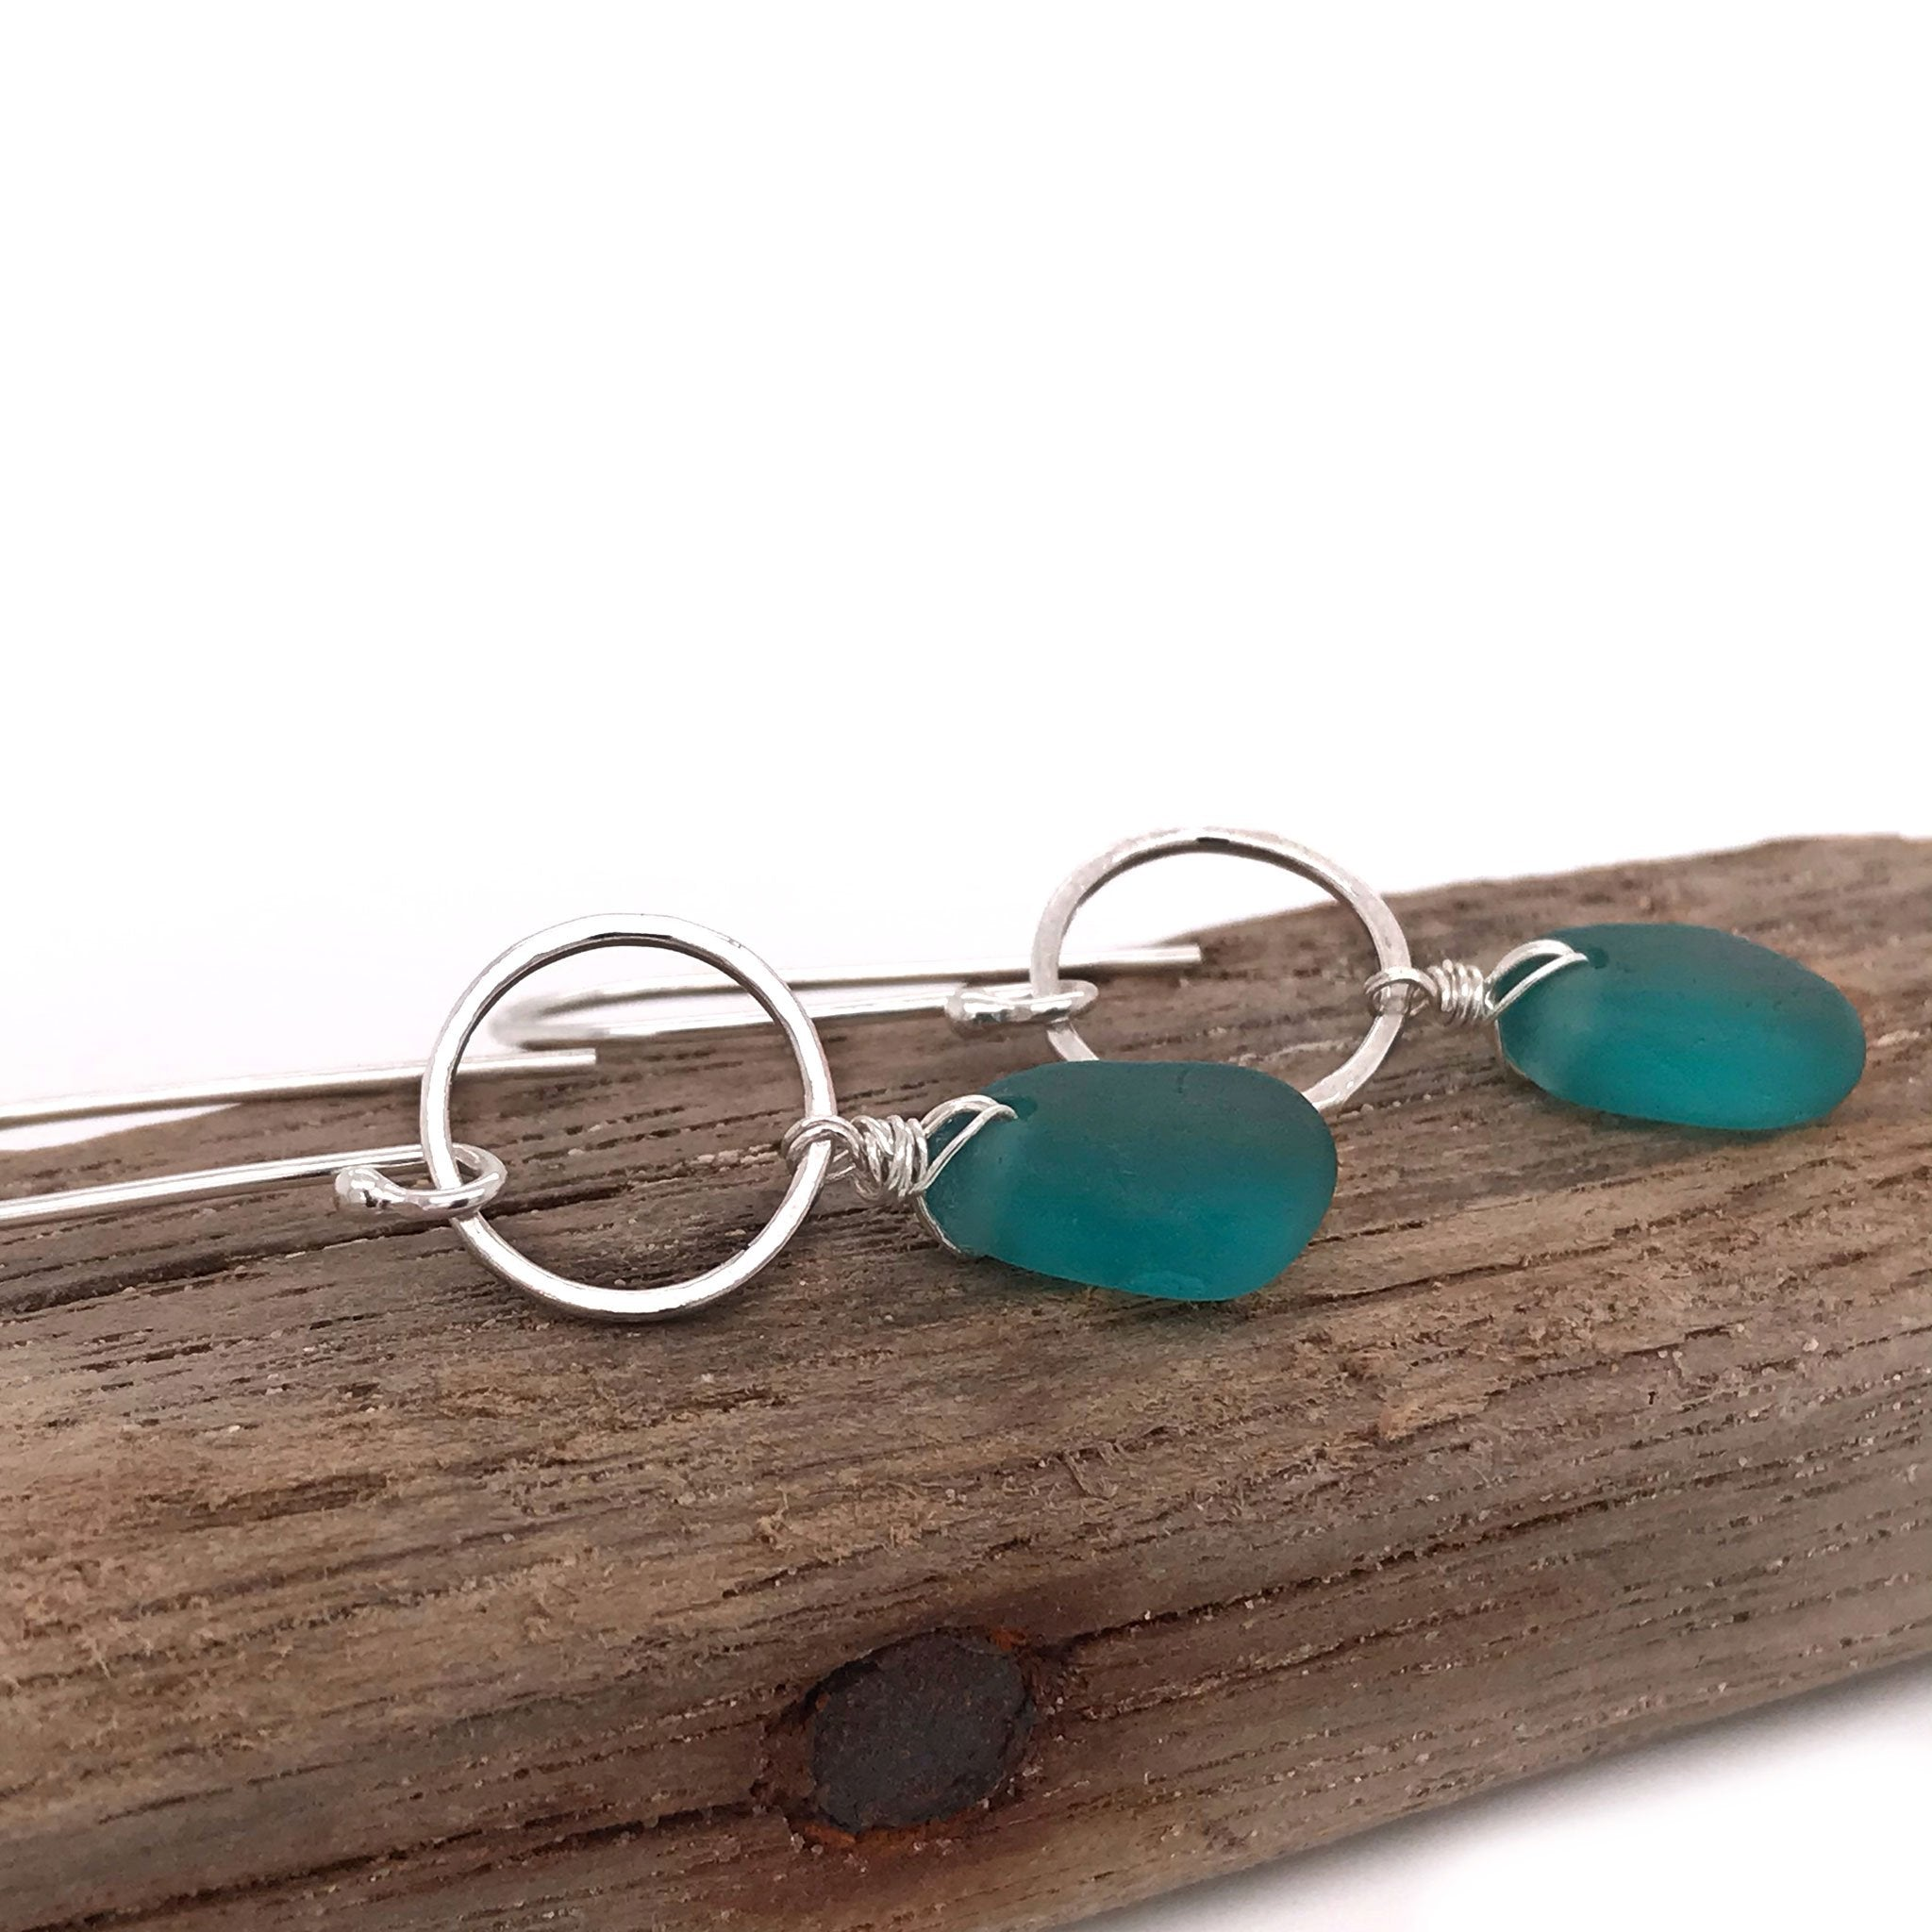 teal seaglass earrings sterling silver circle design Kriket Broadhurst jewellery